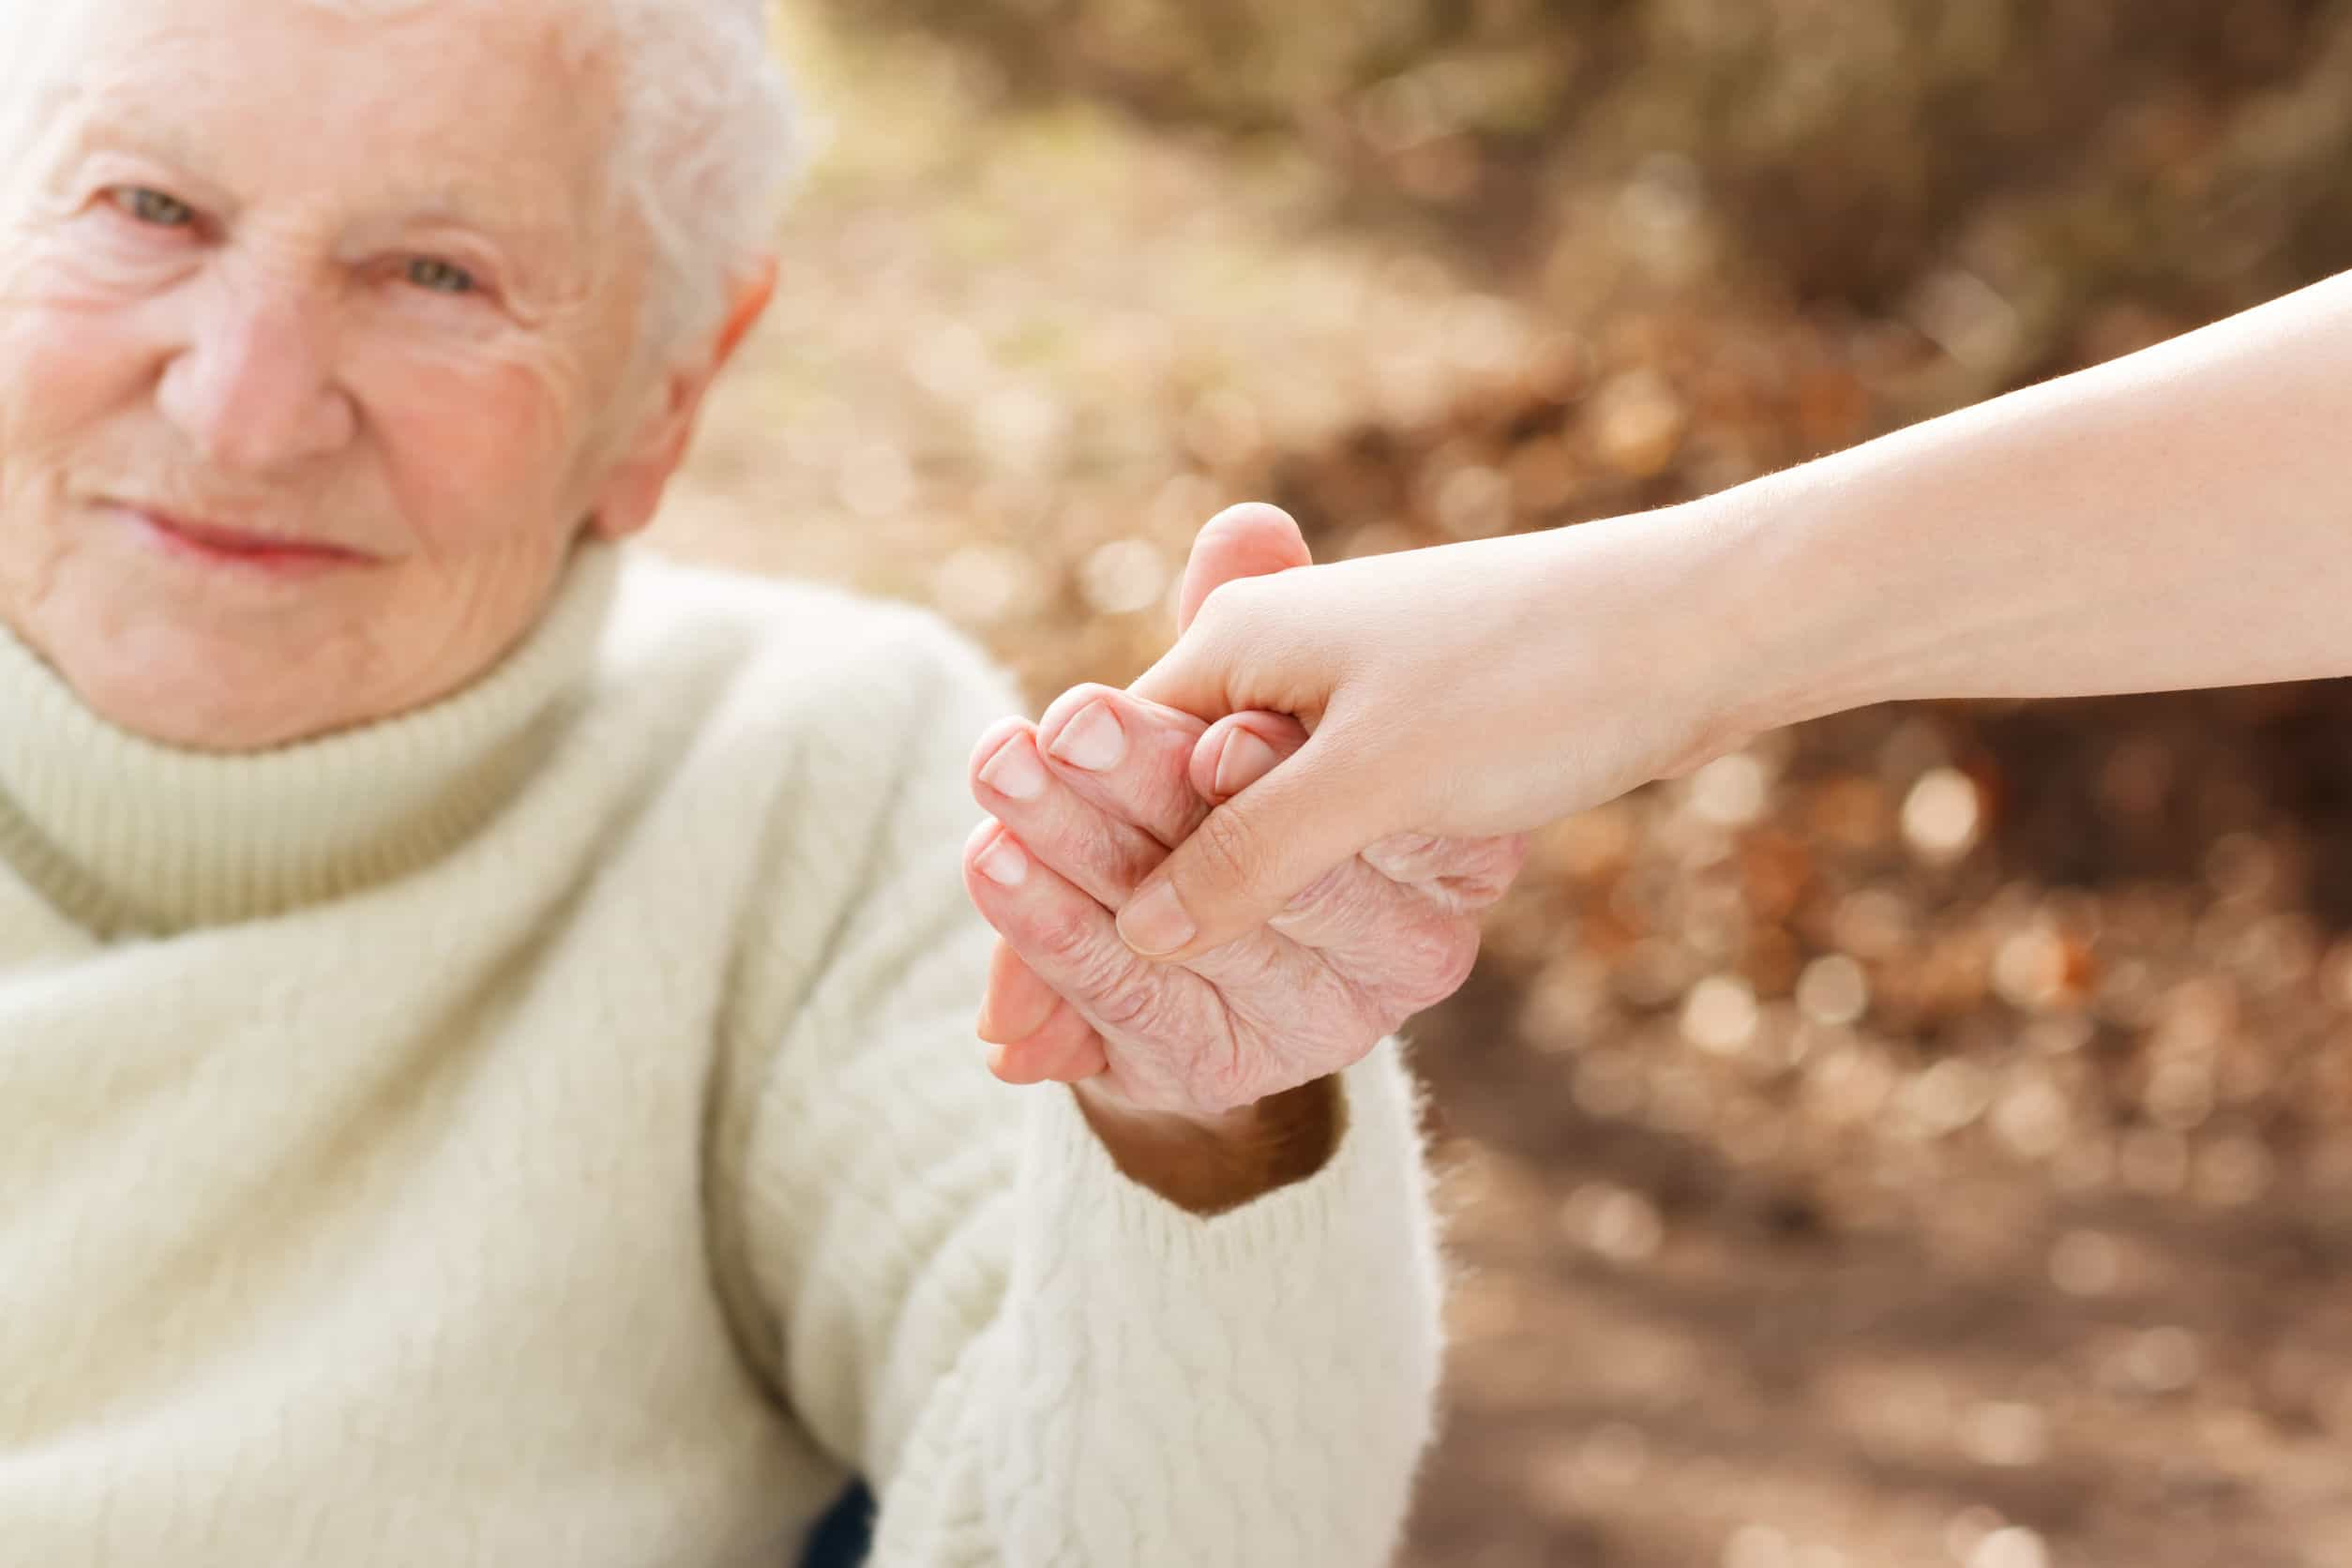 31072401 - elderly woman holding hands with young woman outside